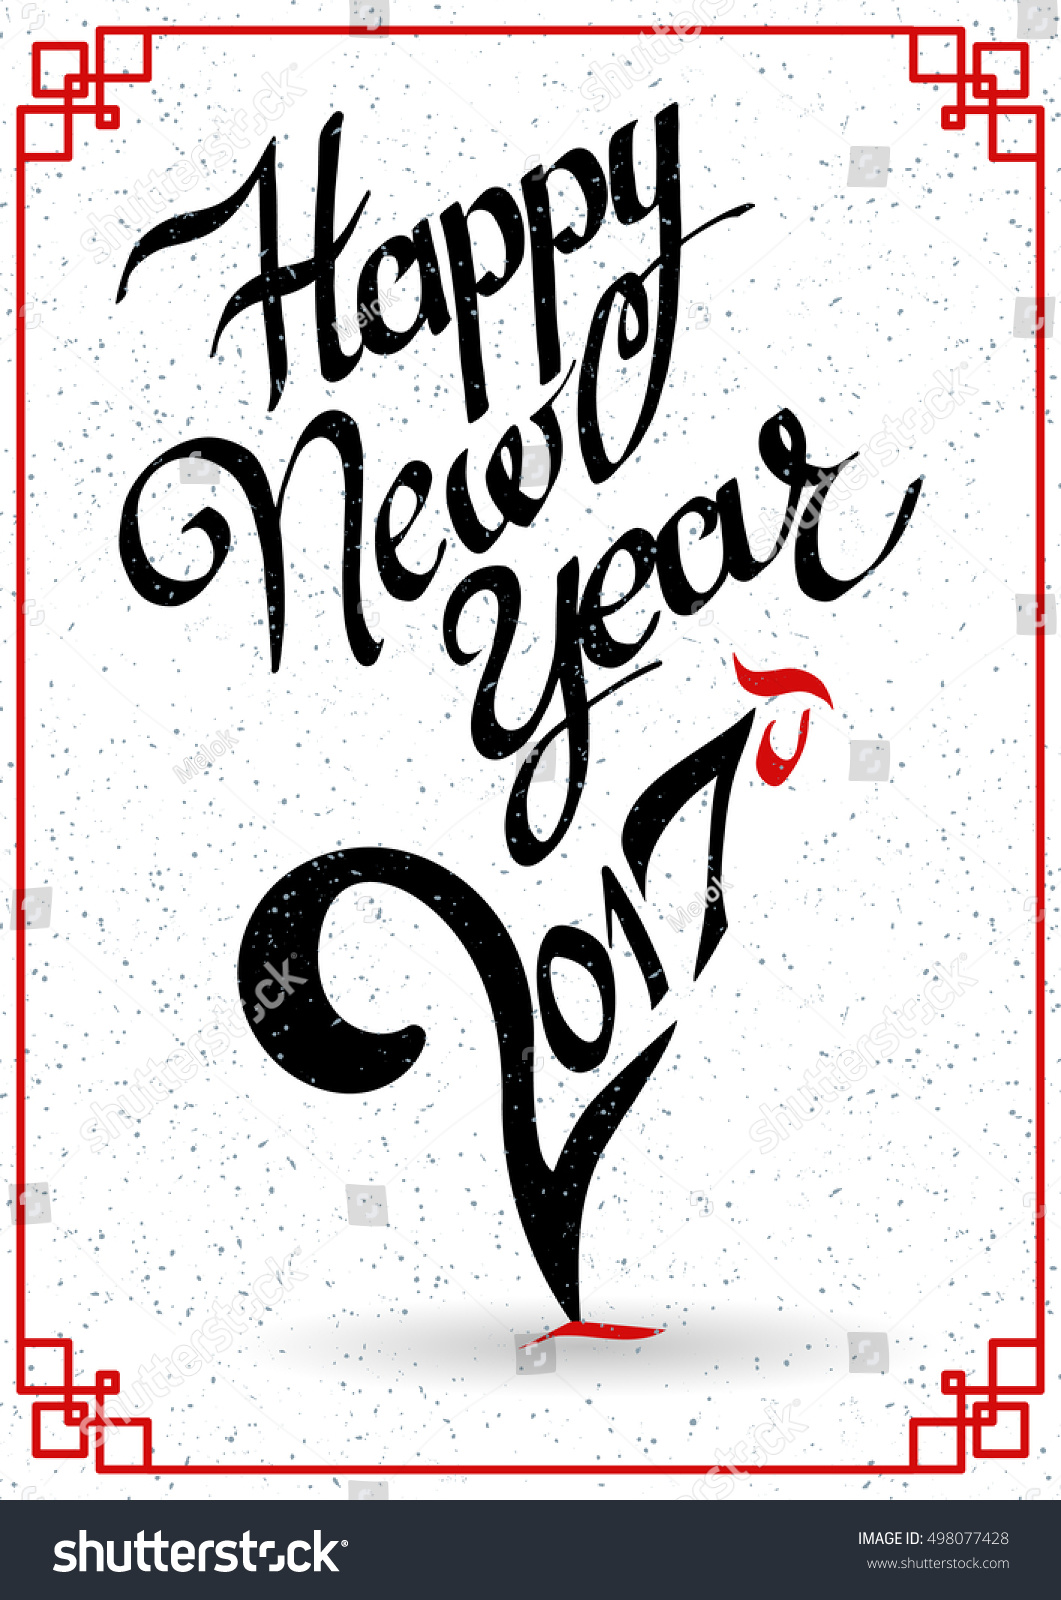 Royalty free happy new year 2017 creative greeting 498077428 concept lettering handmade vector calligraphy for prints posters cards gift design greeting card with rooster symbol of the chinese new year biocorpaavc